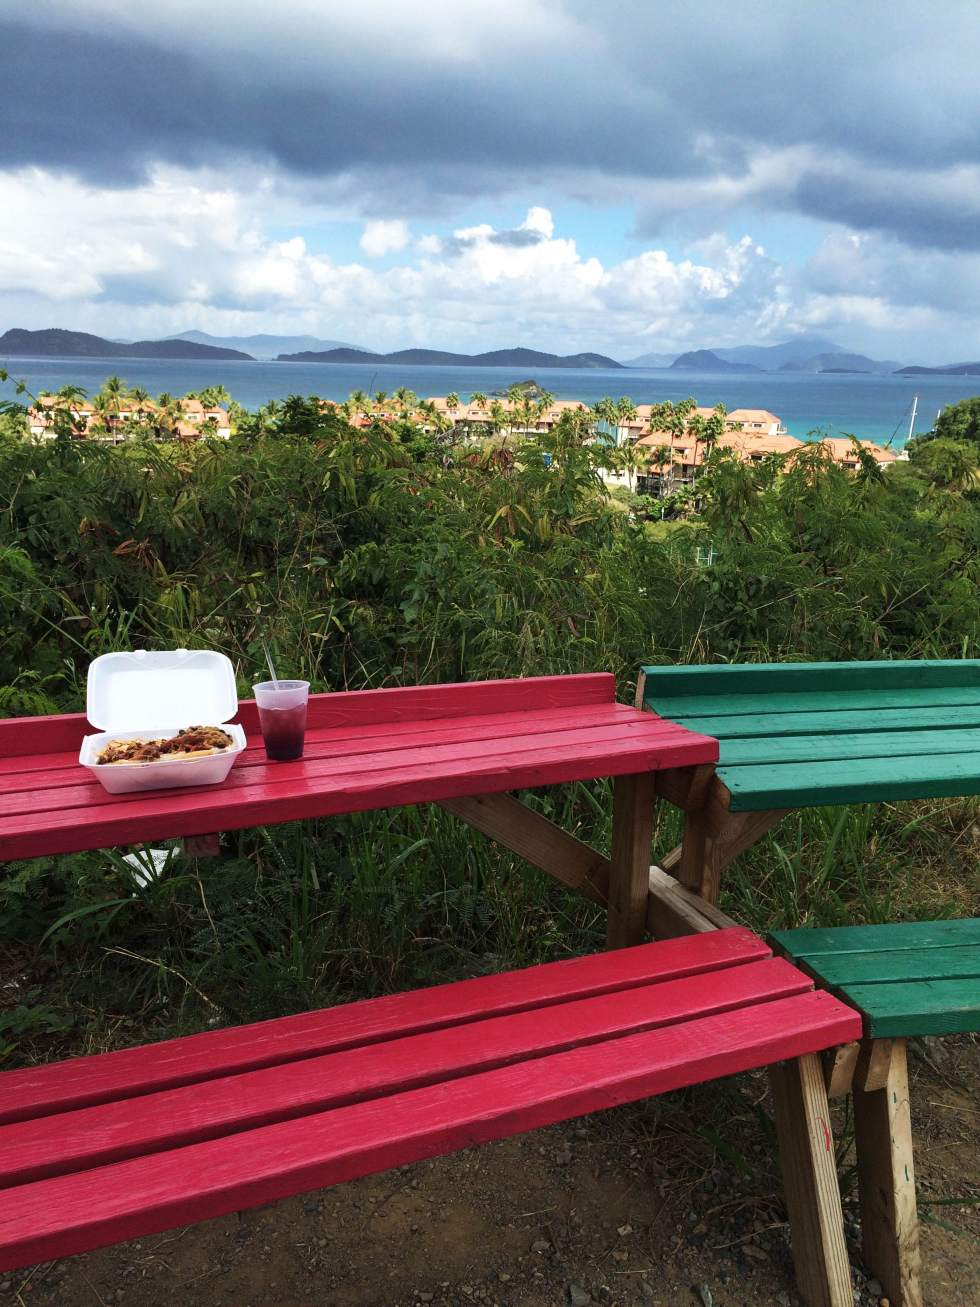 Lunch with a View, St. Thomas - USVI Travelogue {Katie at the Kitchen Door}